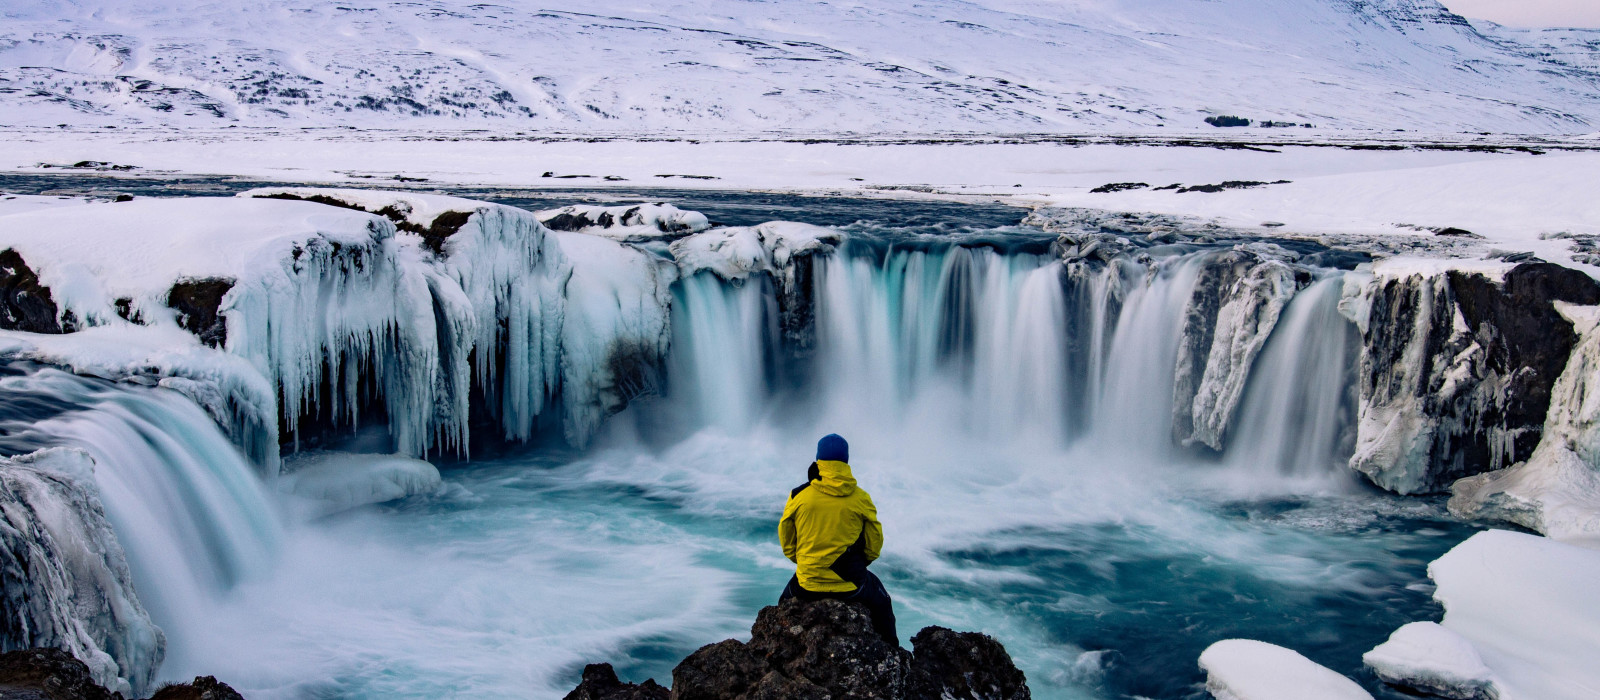 Godafoss is one of the most spectacular waterfalls in Iceland